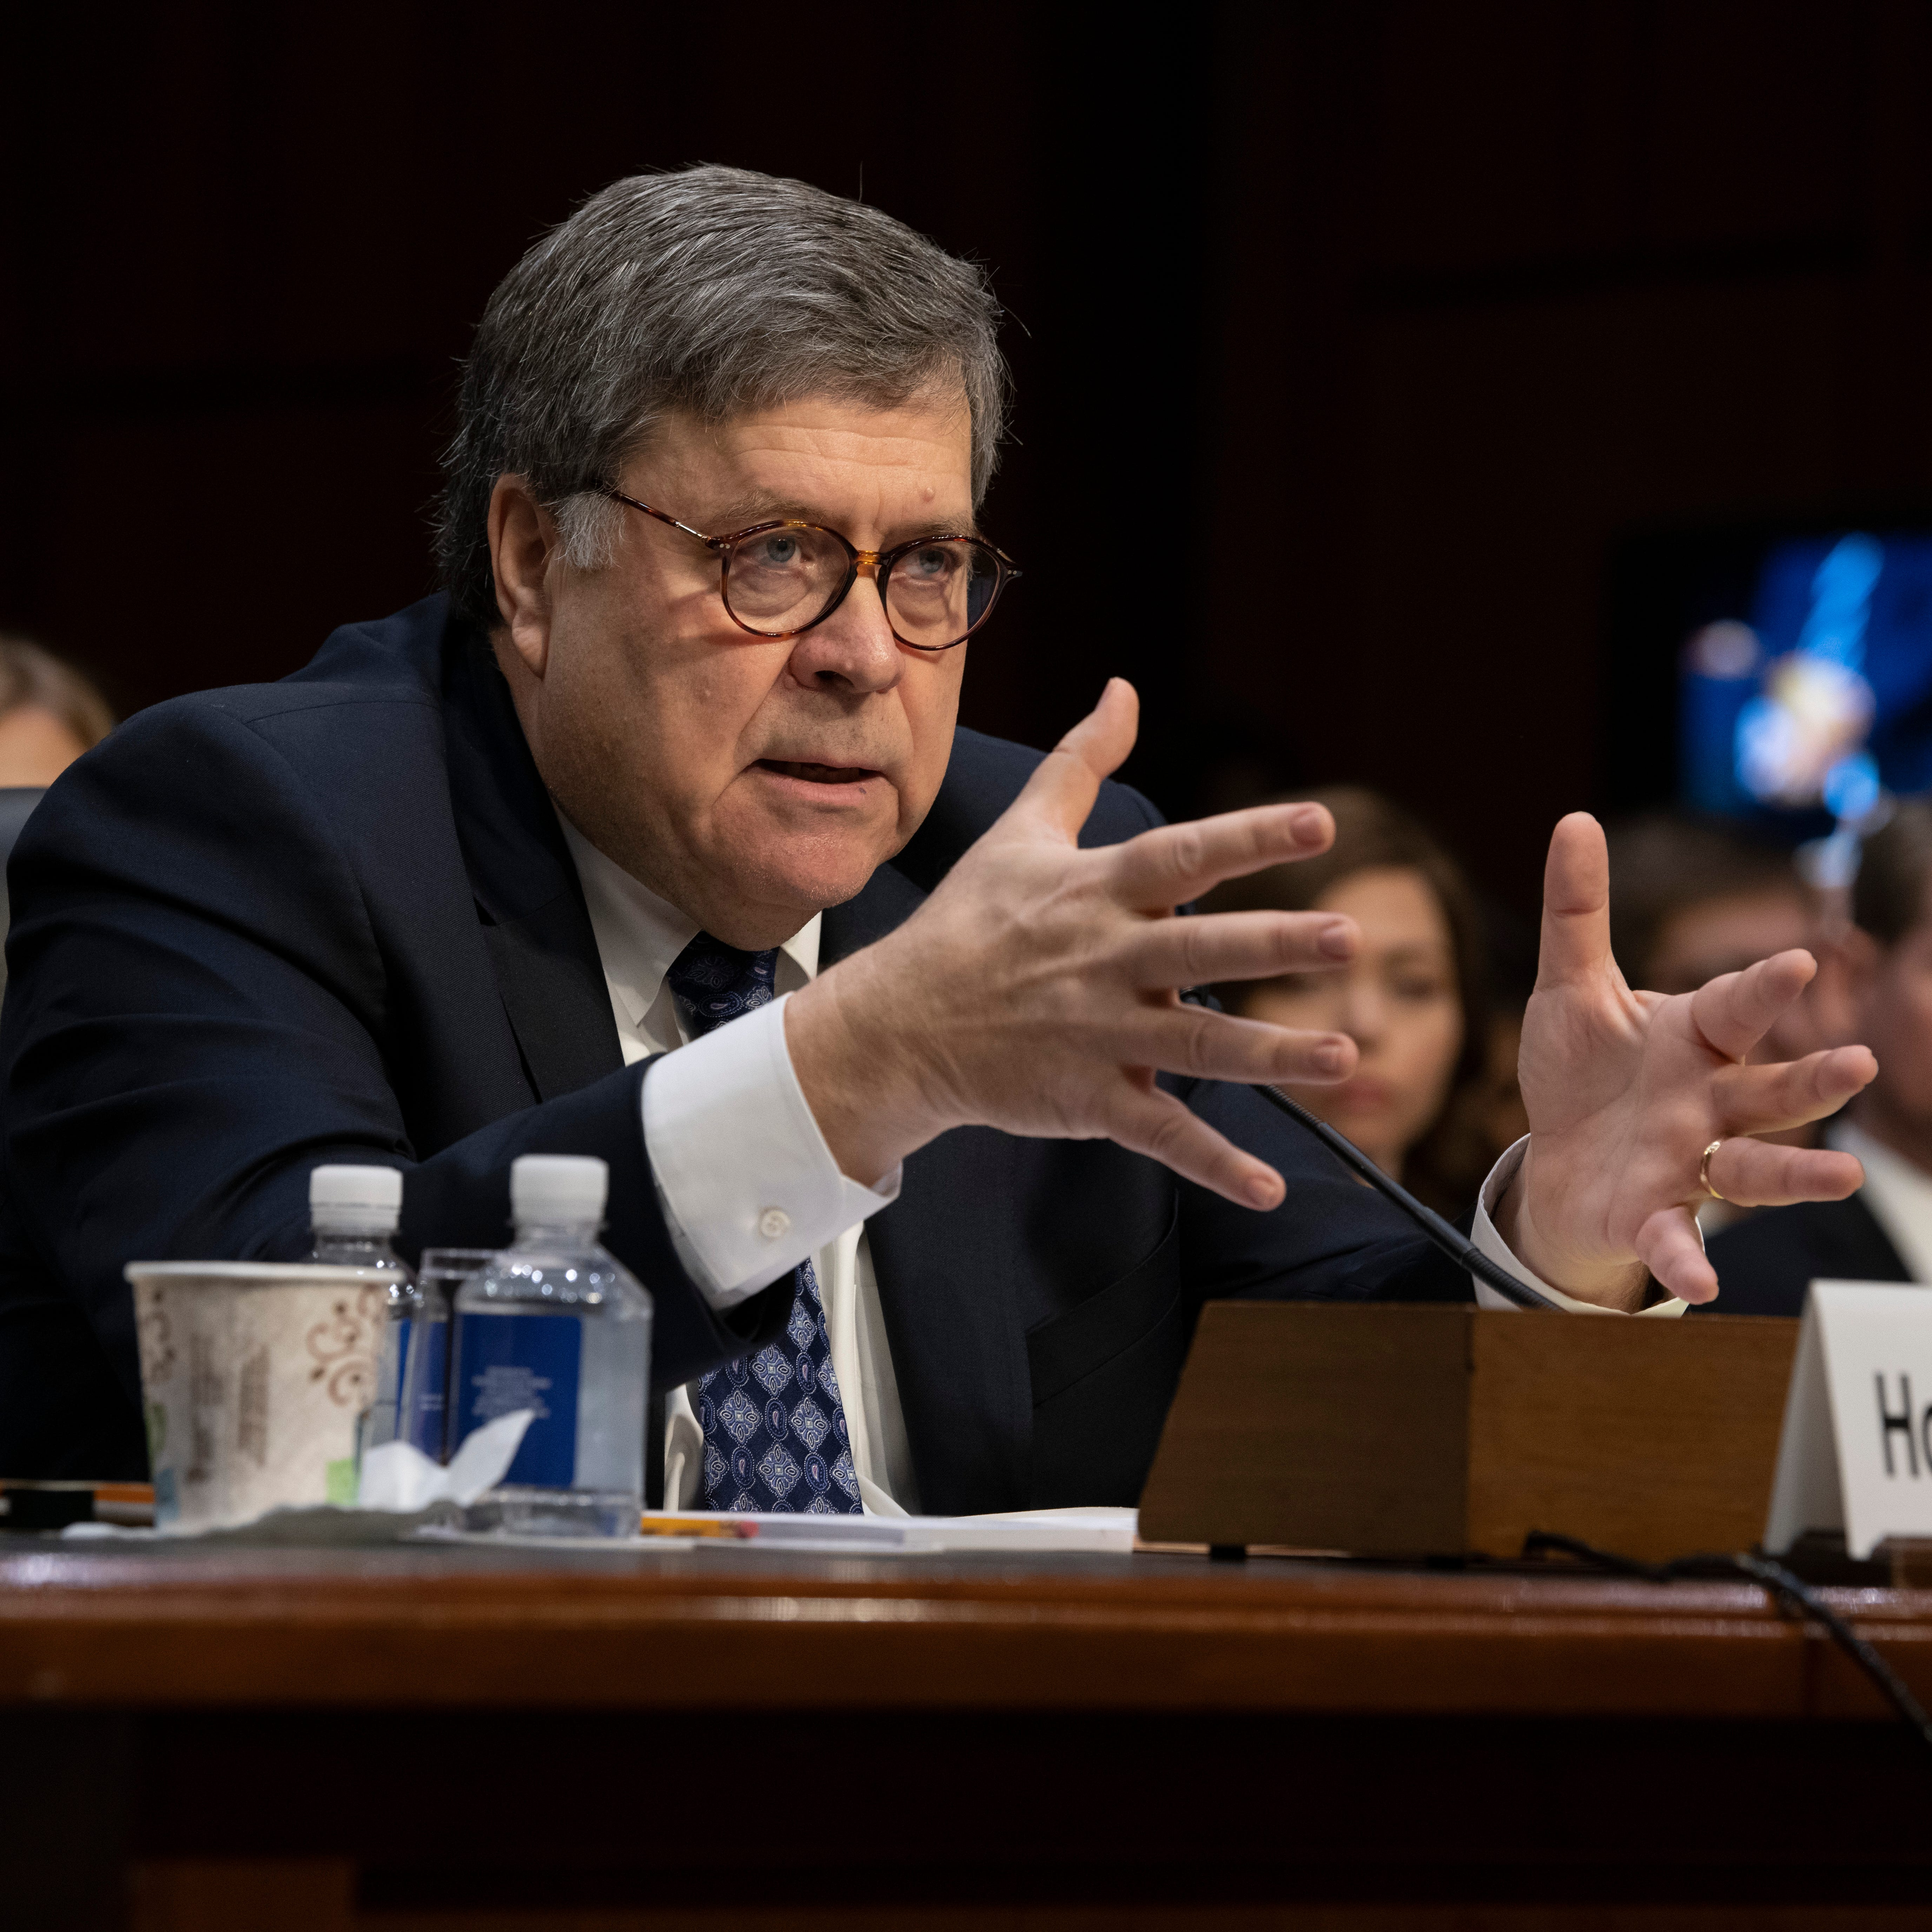 Attorney General nominee Barr on collision course with history